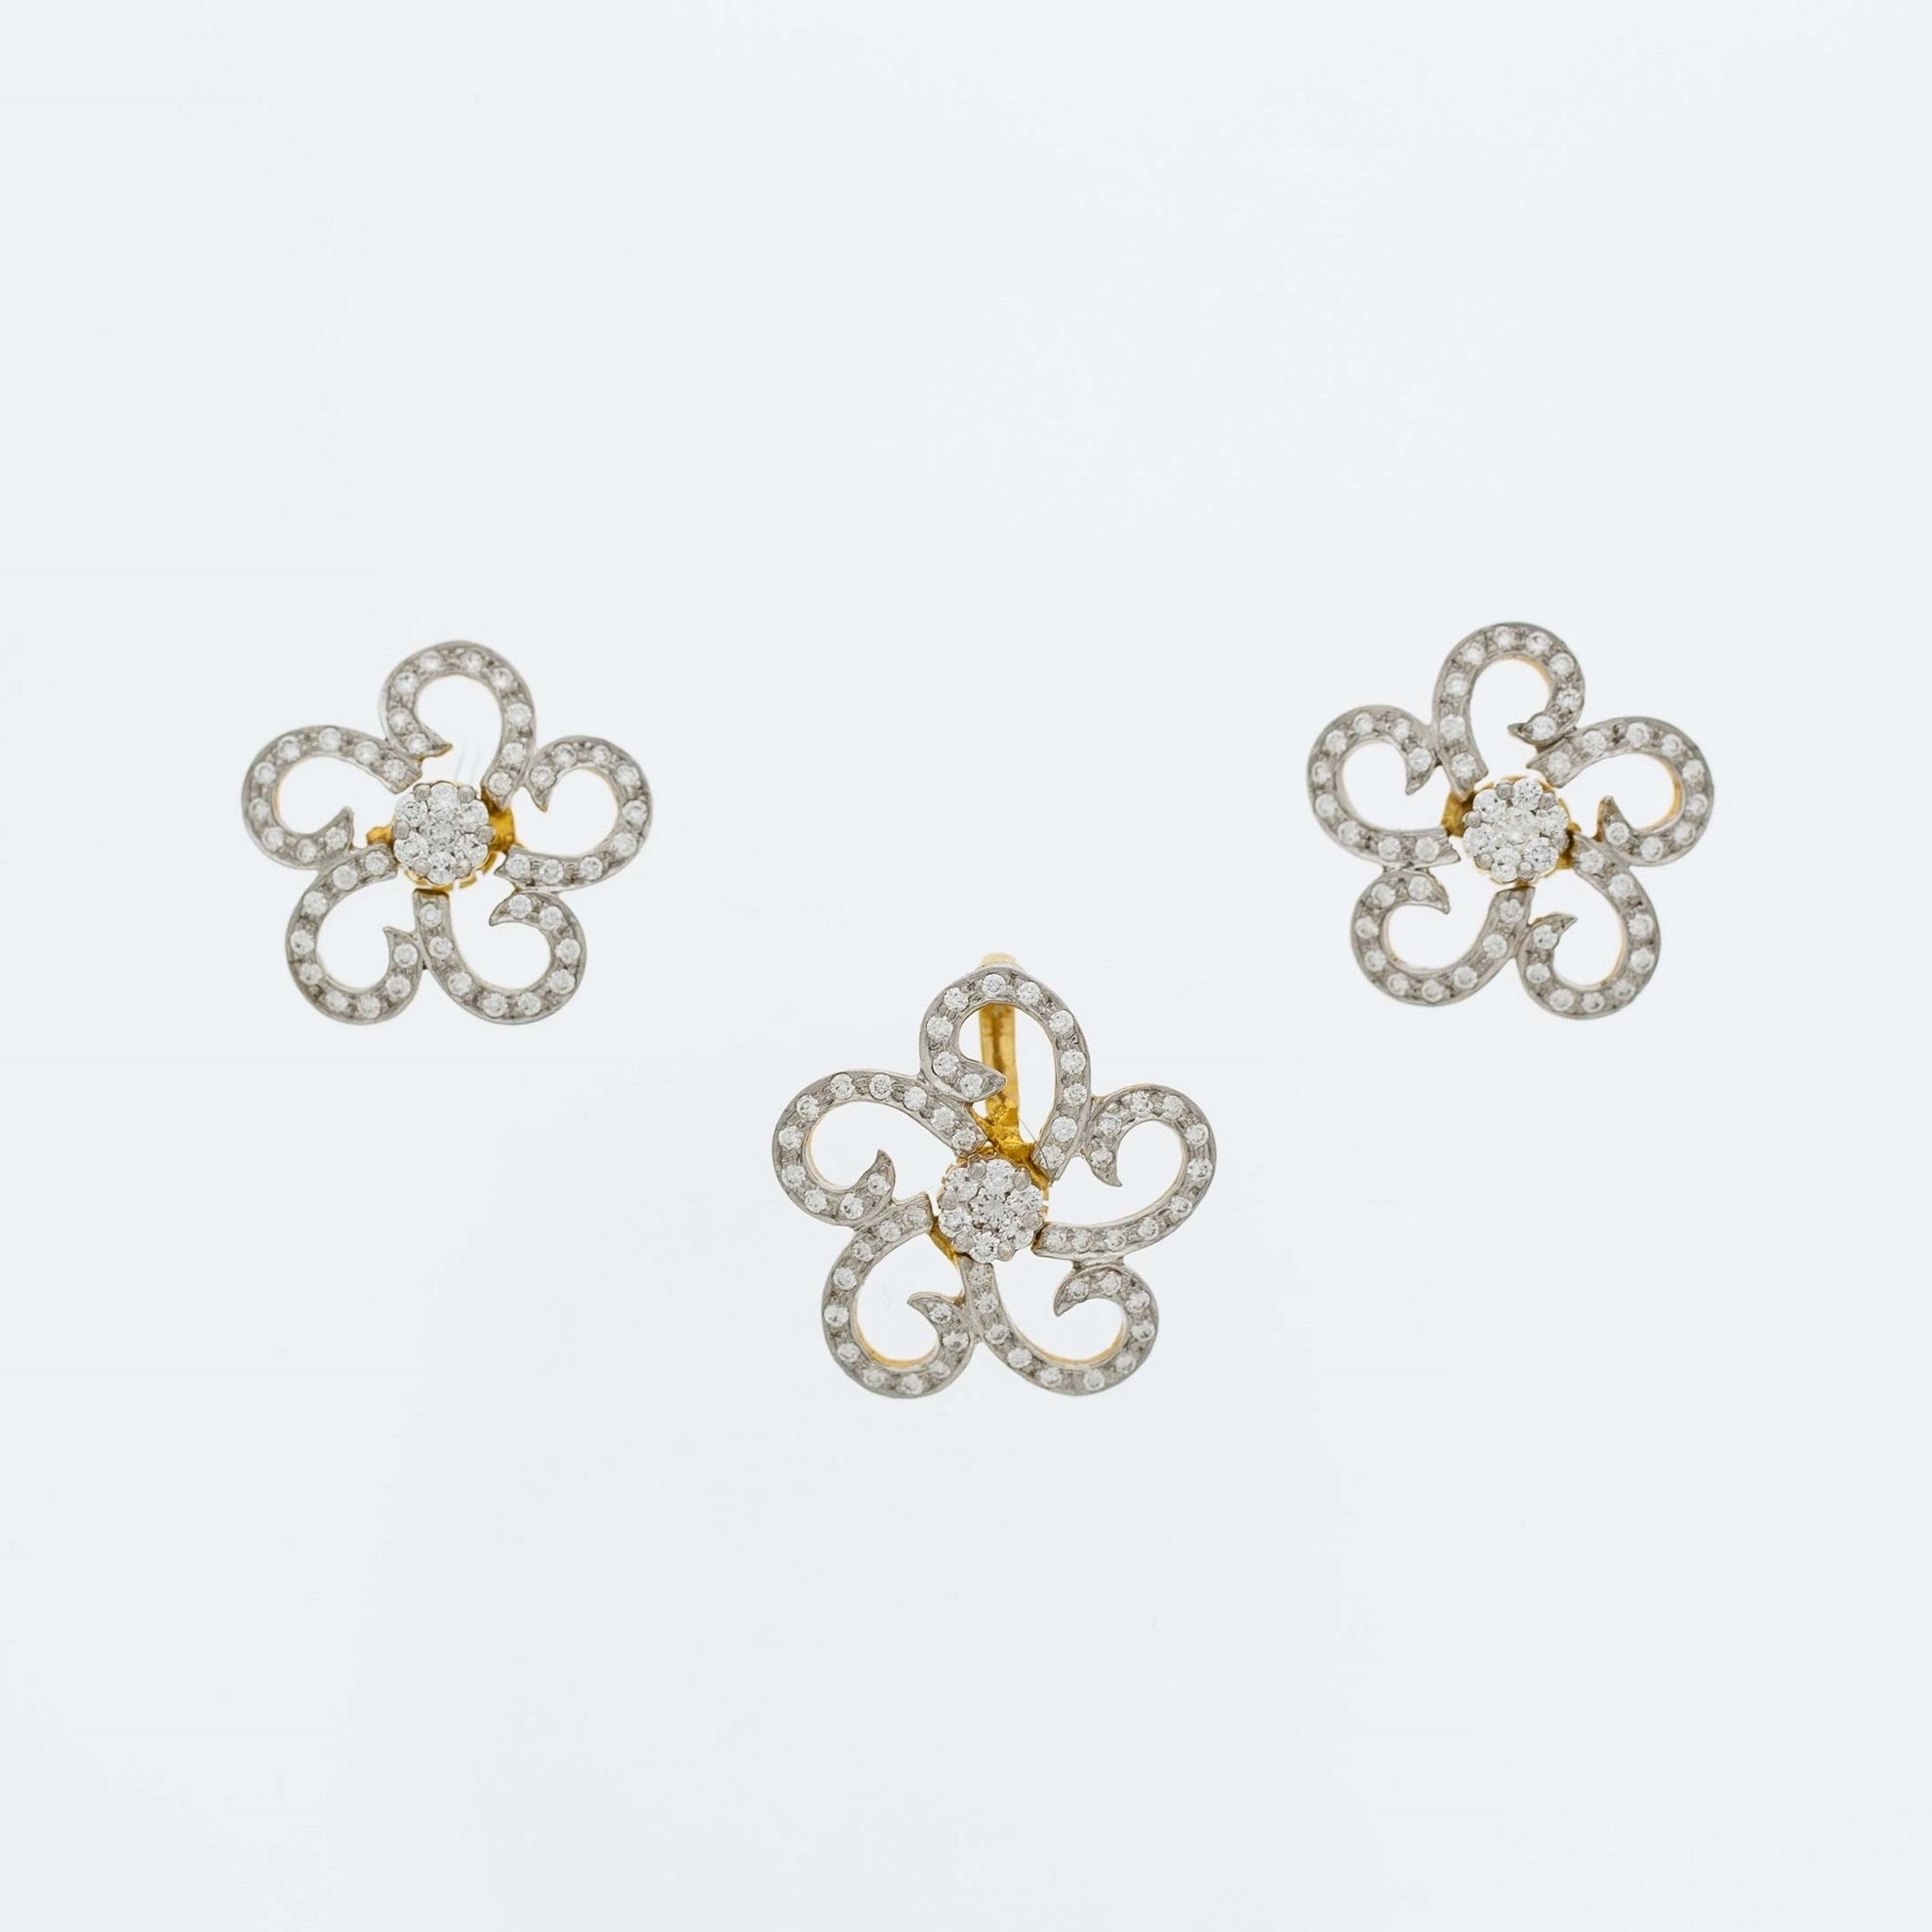 Picture for category Diamond Pendant Sets